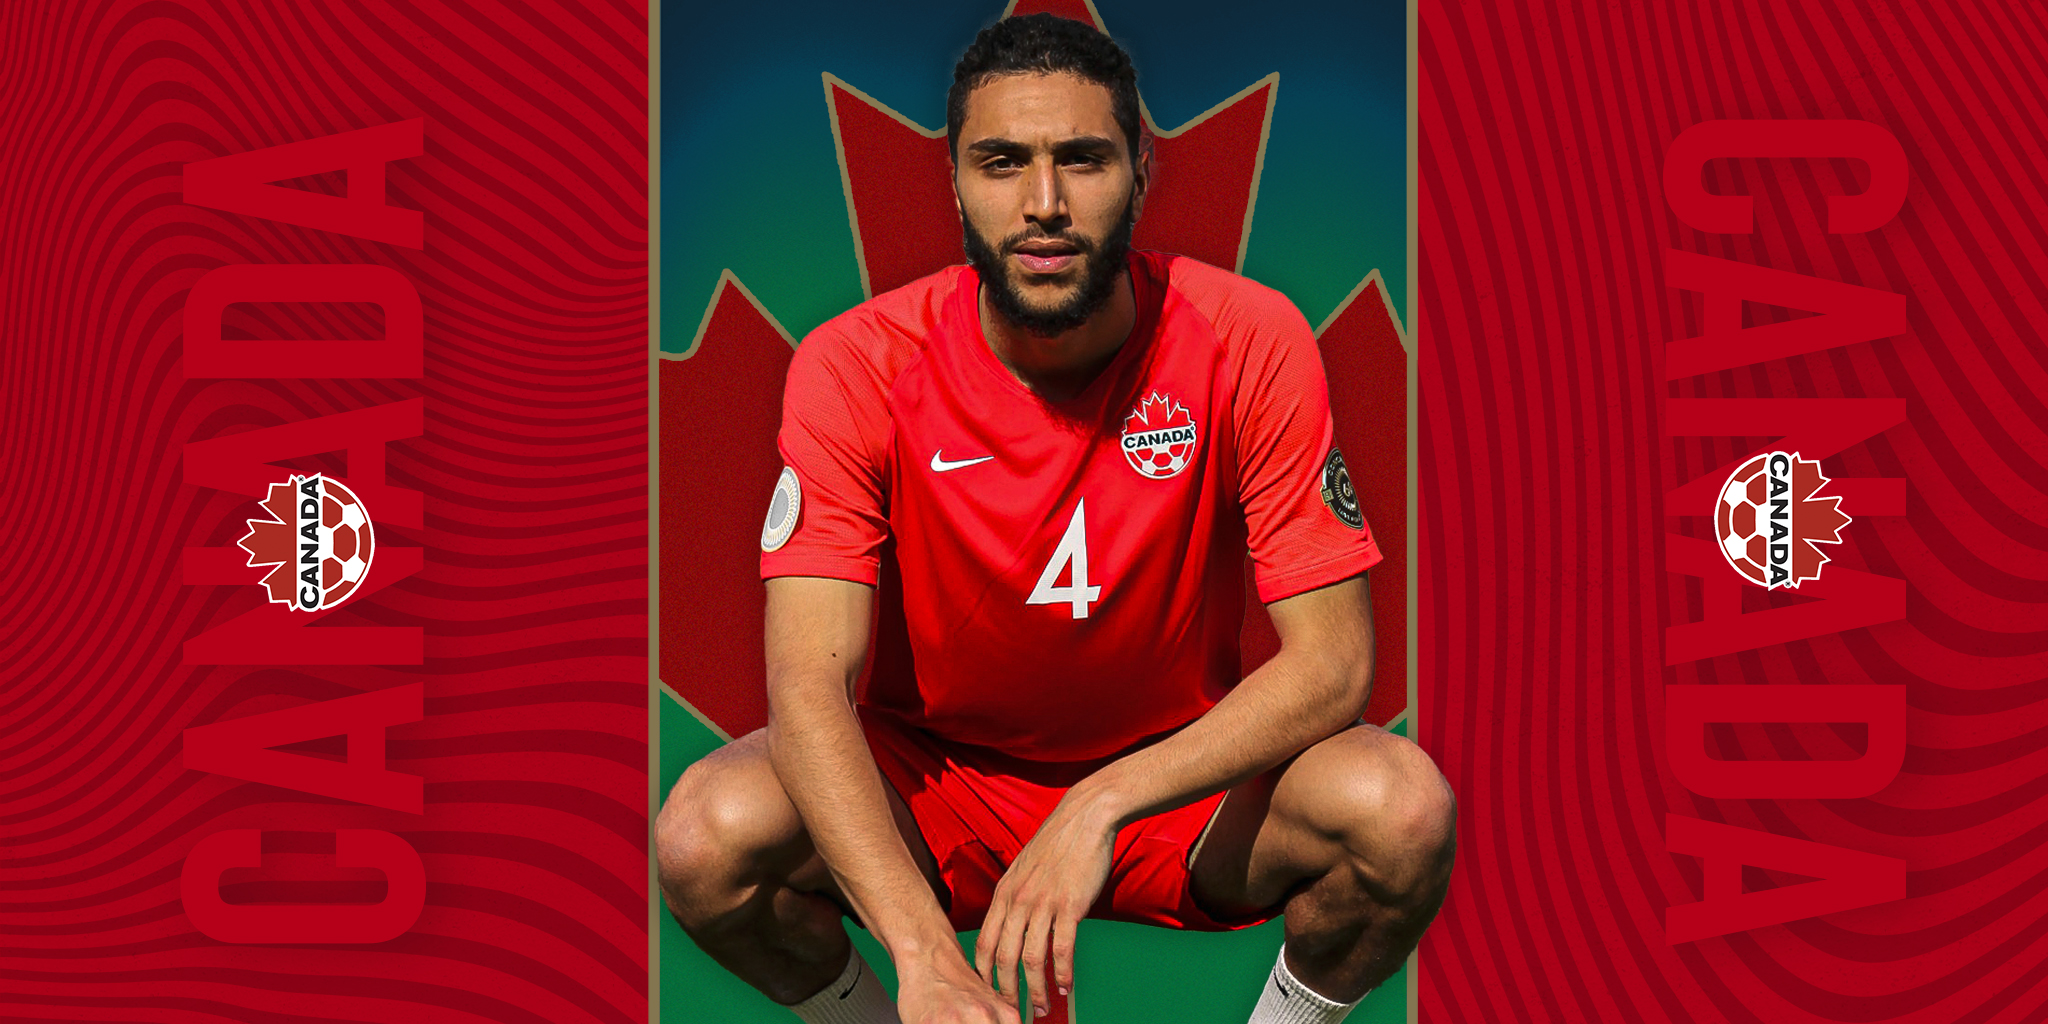 'A feeling that can't be described': Abzi looks back on Canada debut